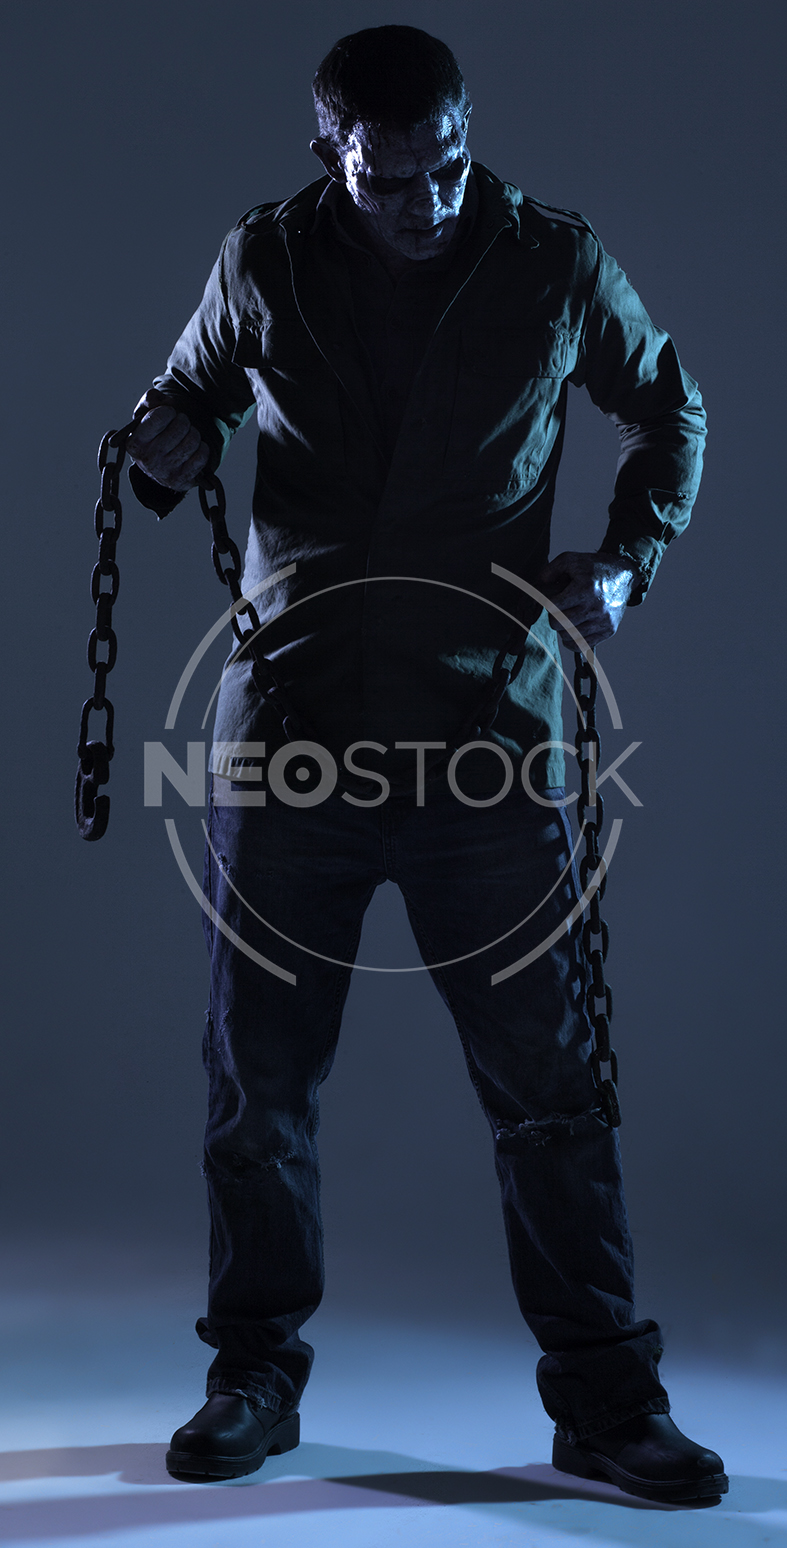 NeoStock - Lou 80s Slasher Horror - Stock Photography IV